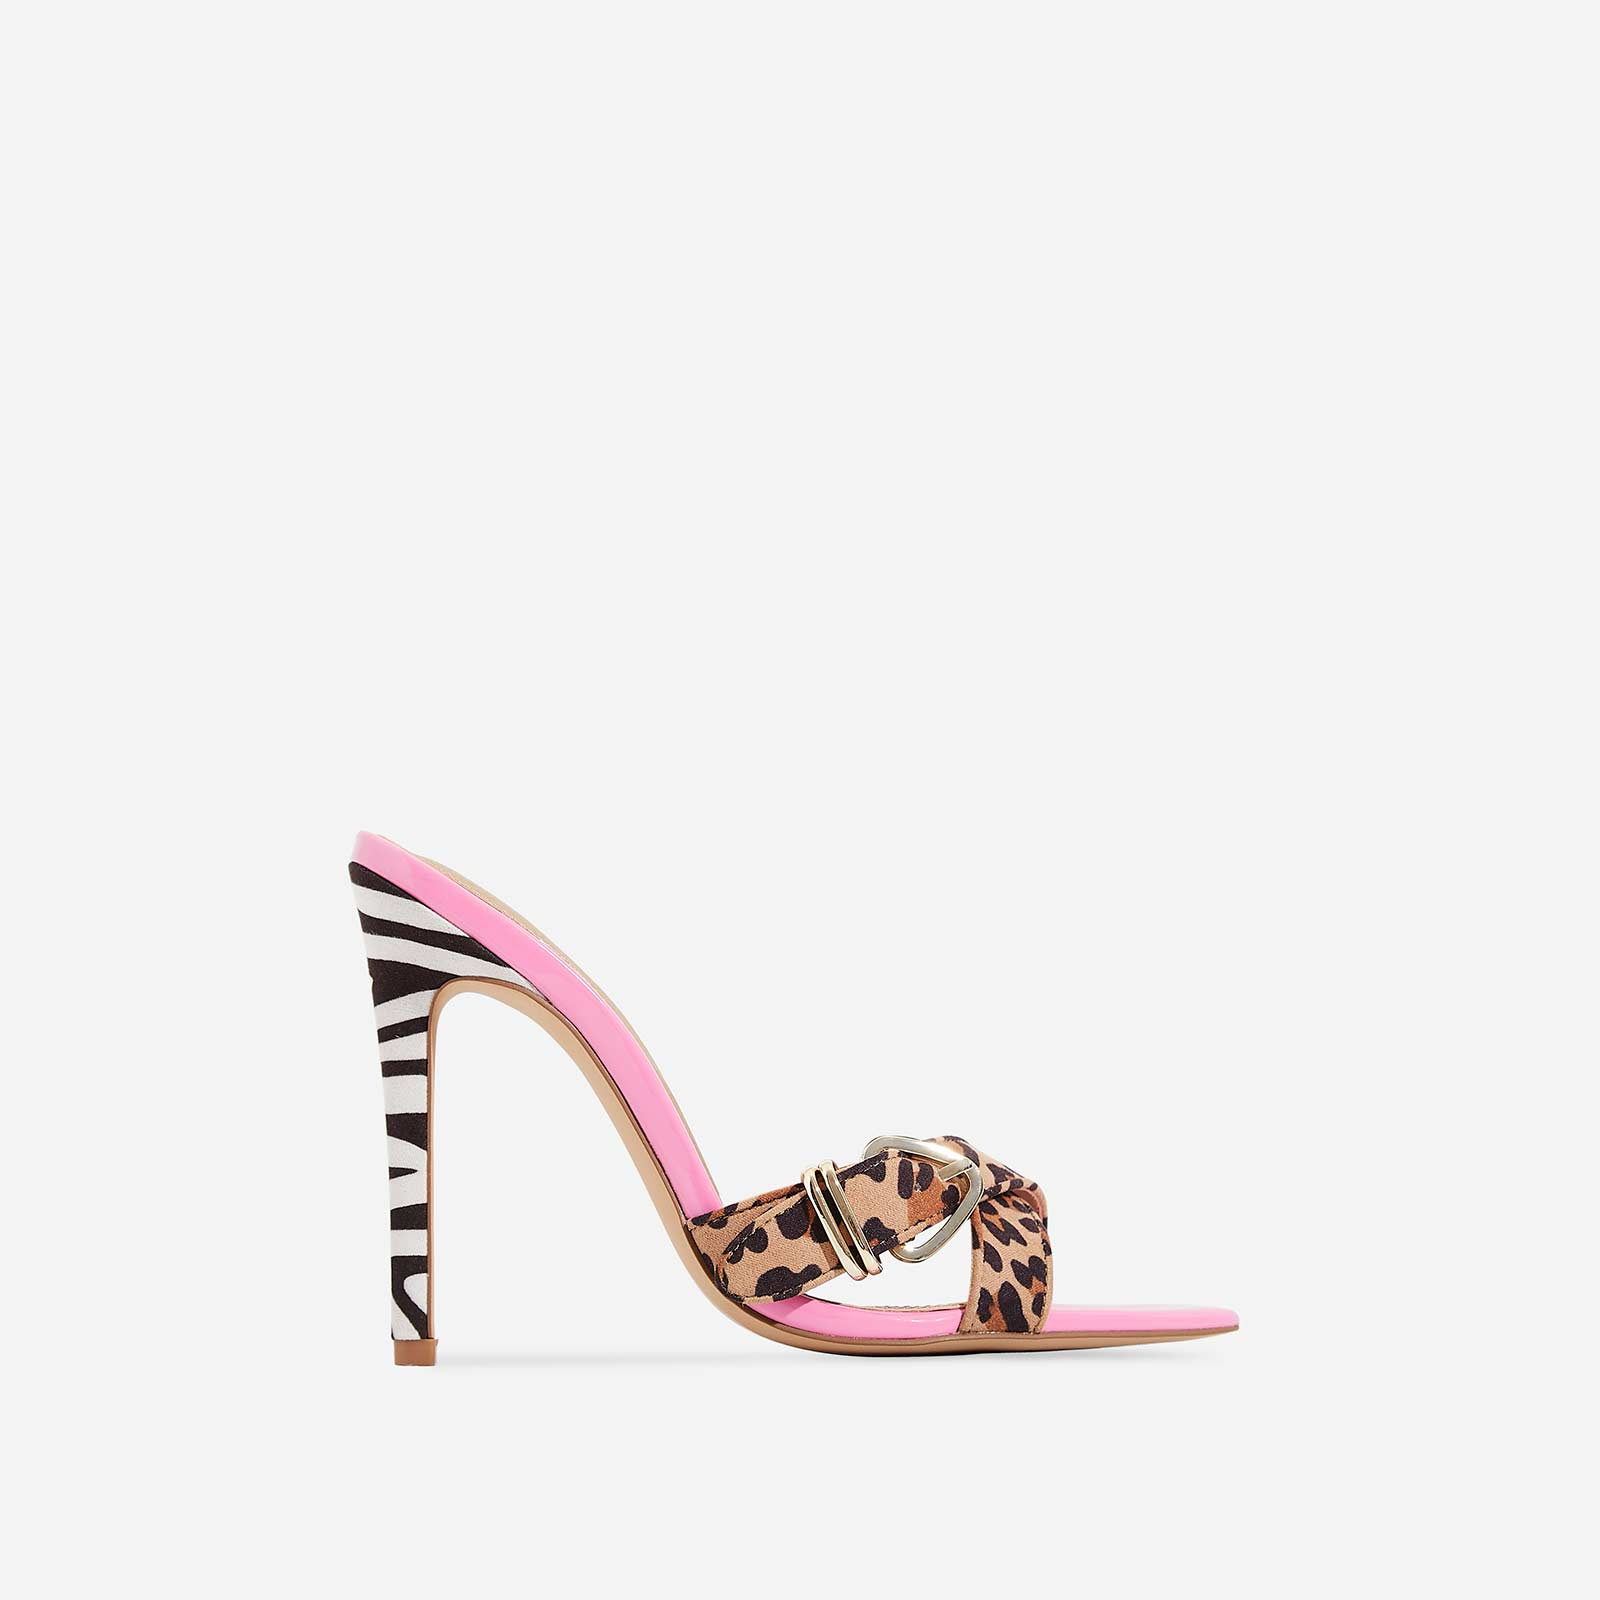 Zane Animal Print Cross Over Mule In Pink Patent